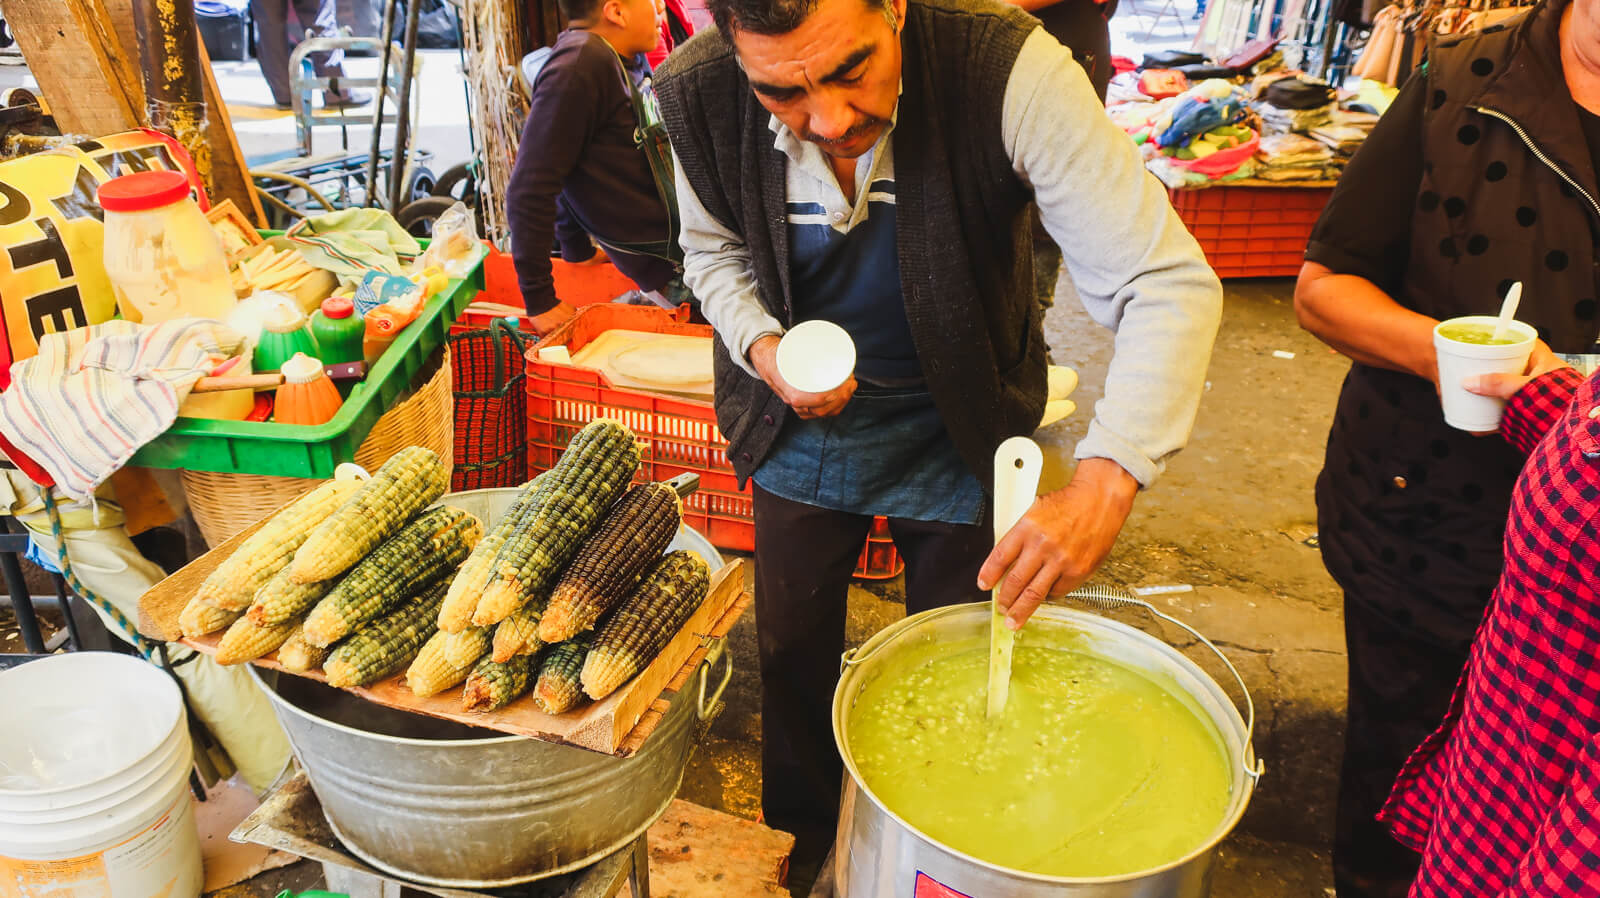 A man in a Mexico City market is standing behind a small table filled with blue corn on the cob and stirs a pot of corn